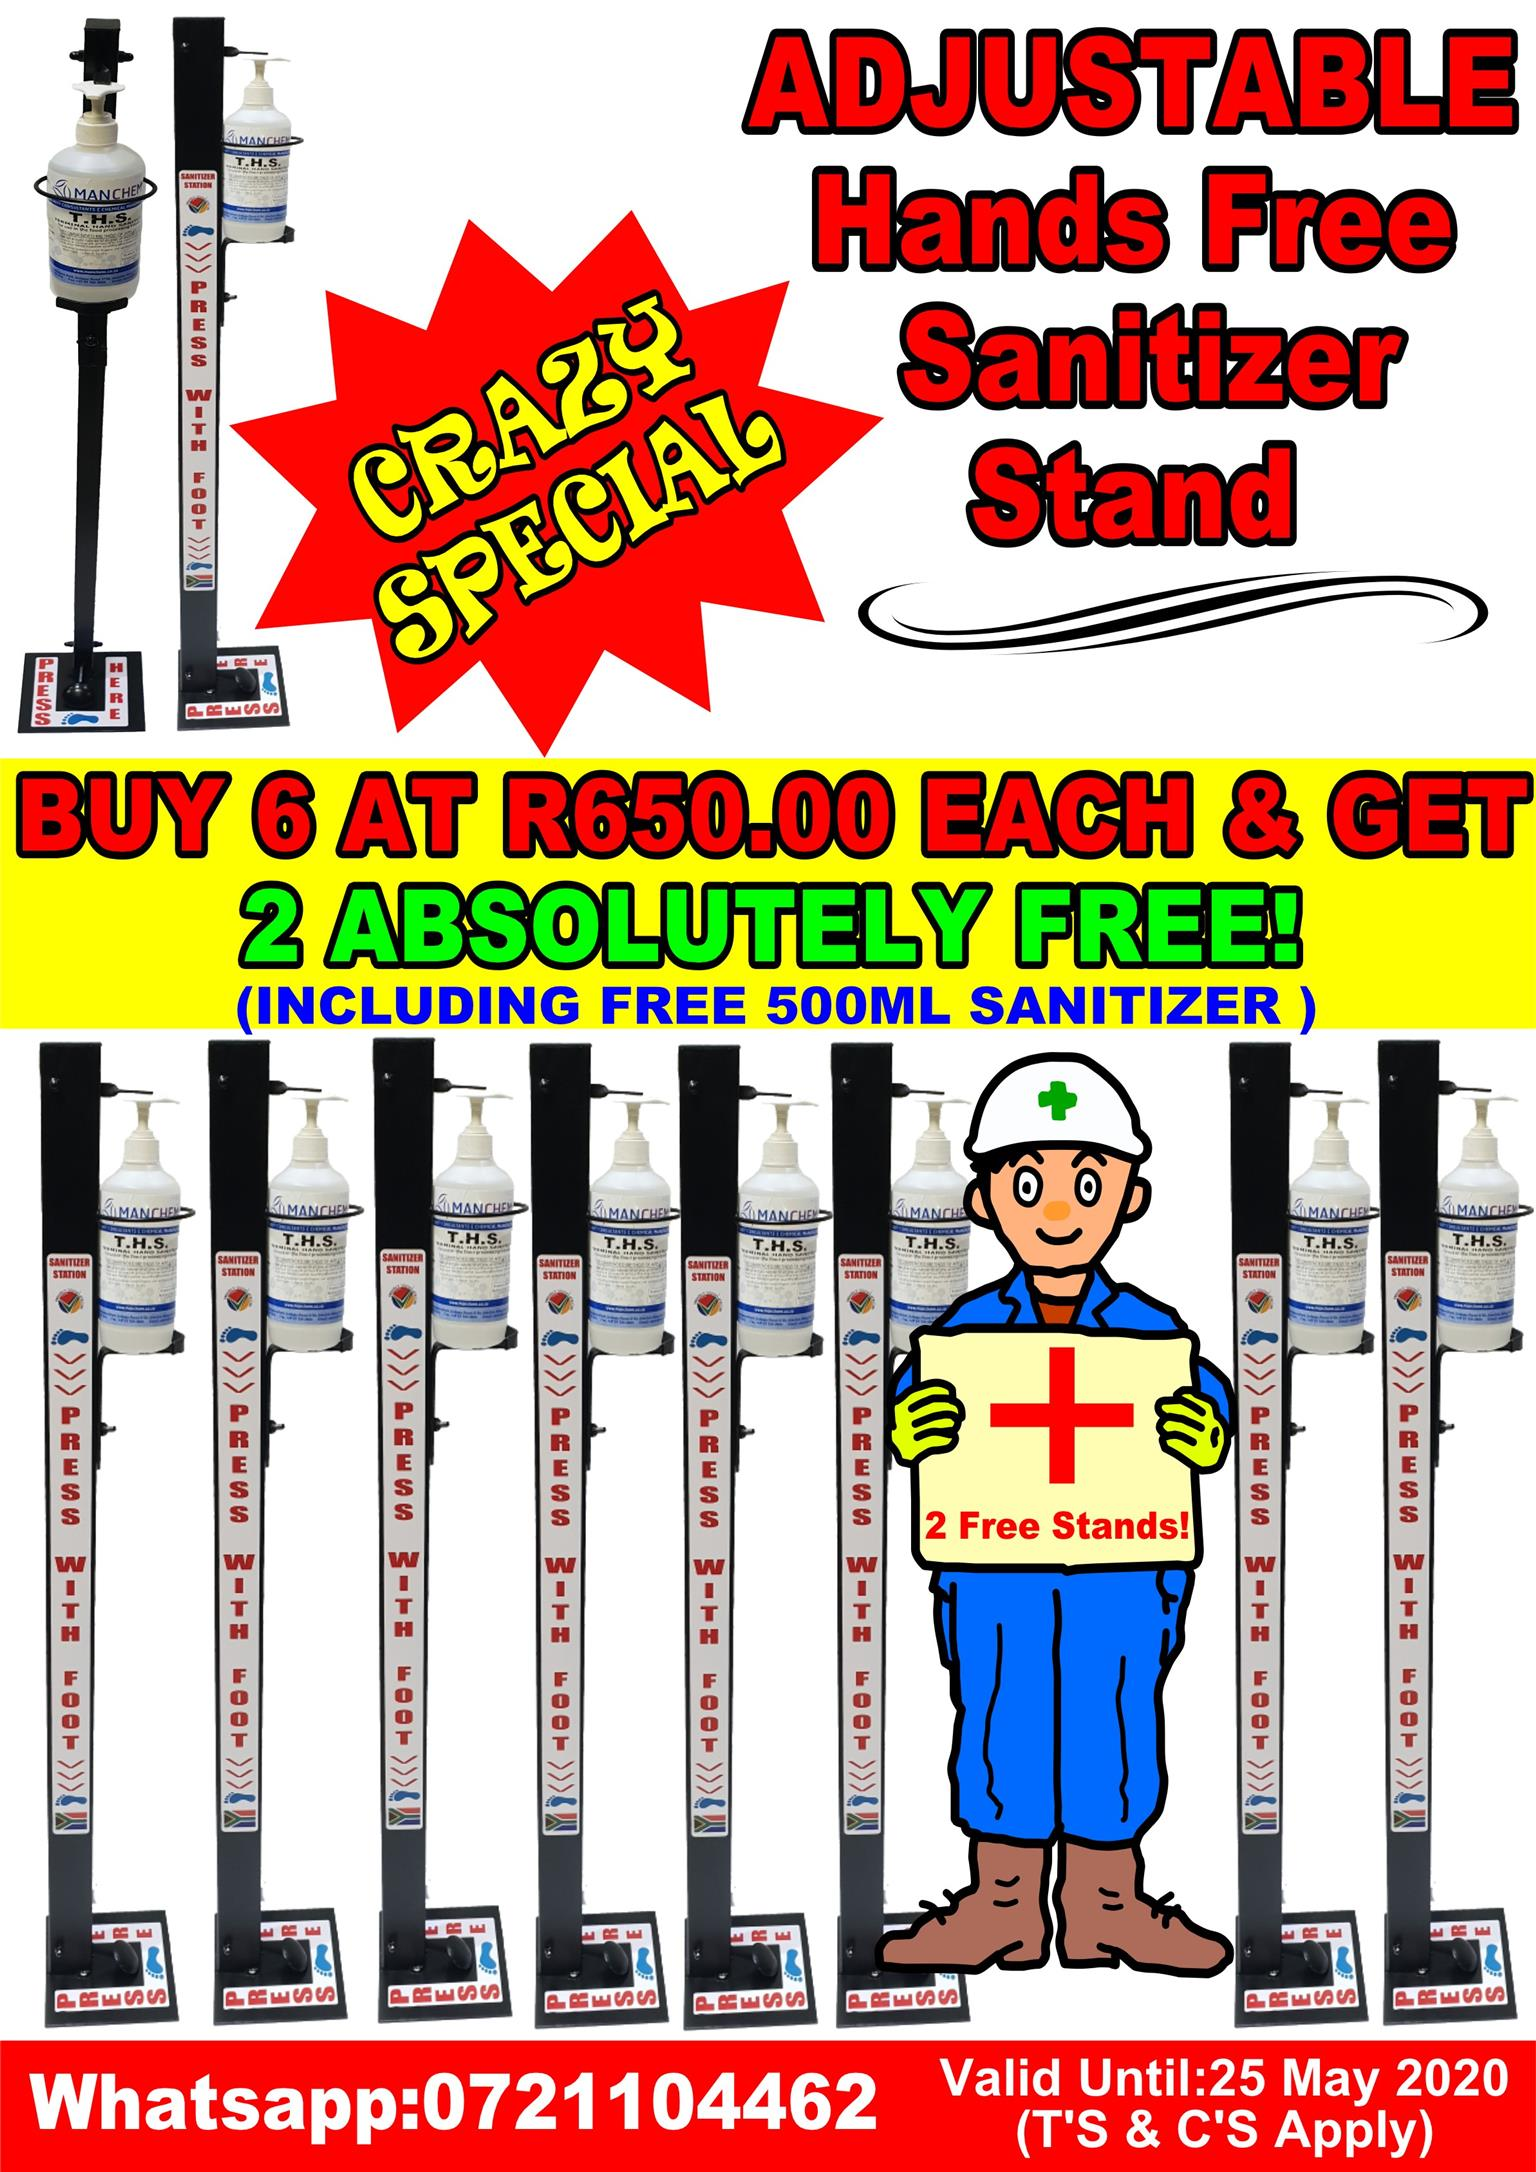 HANDS FREE SANITIZER STAND SPECIAL